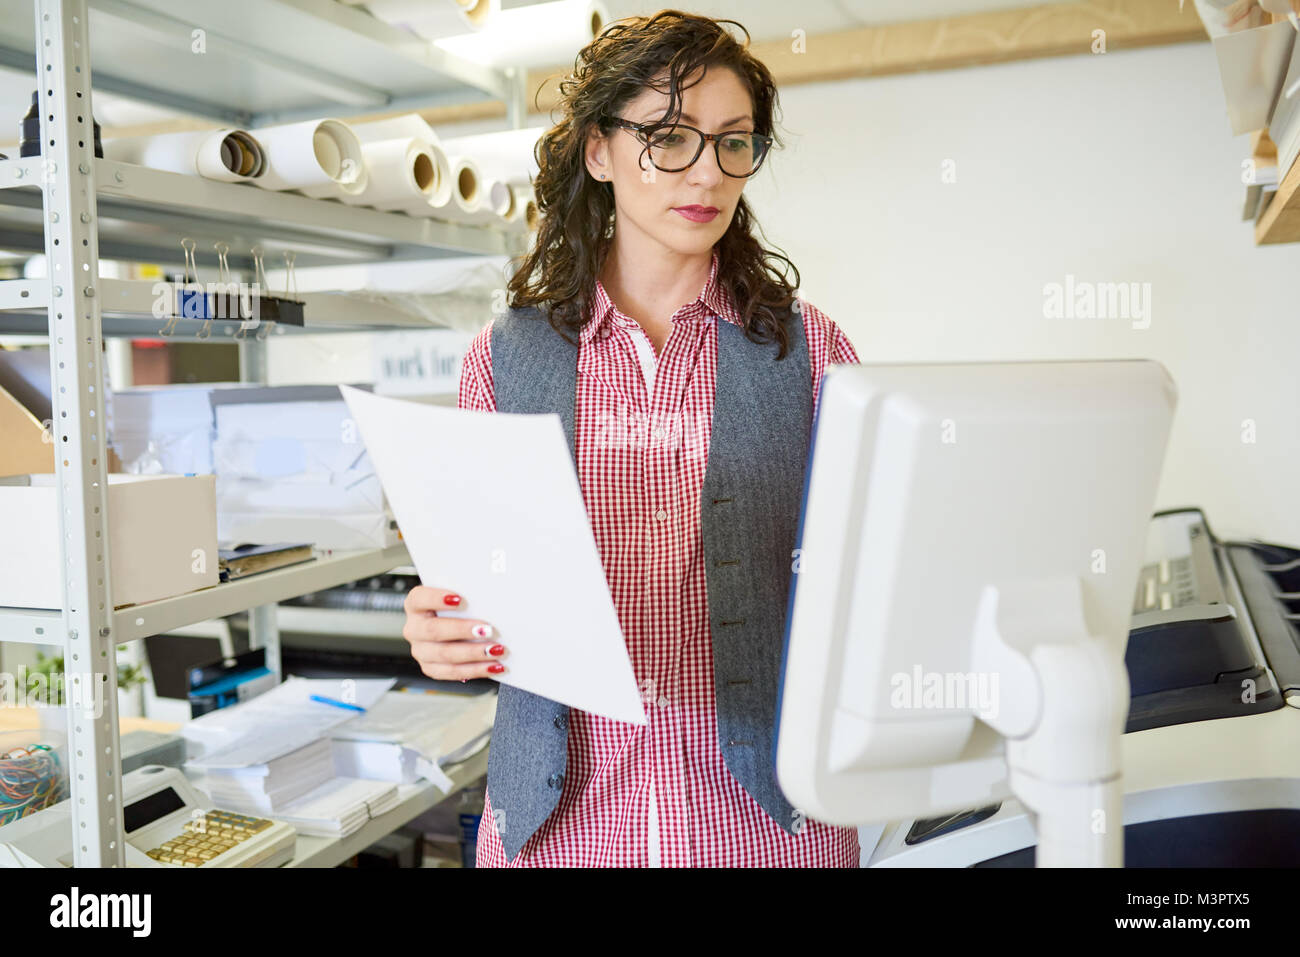 Manager Operating Printing Press - Stock Image